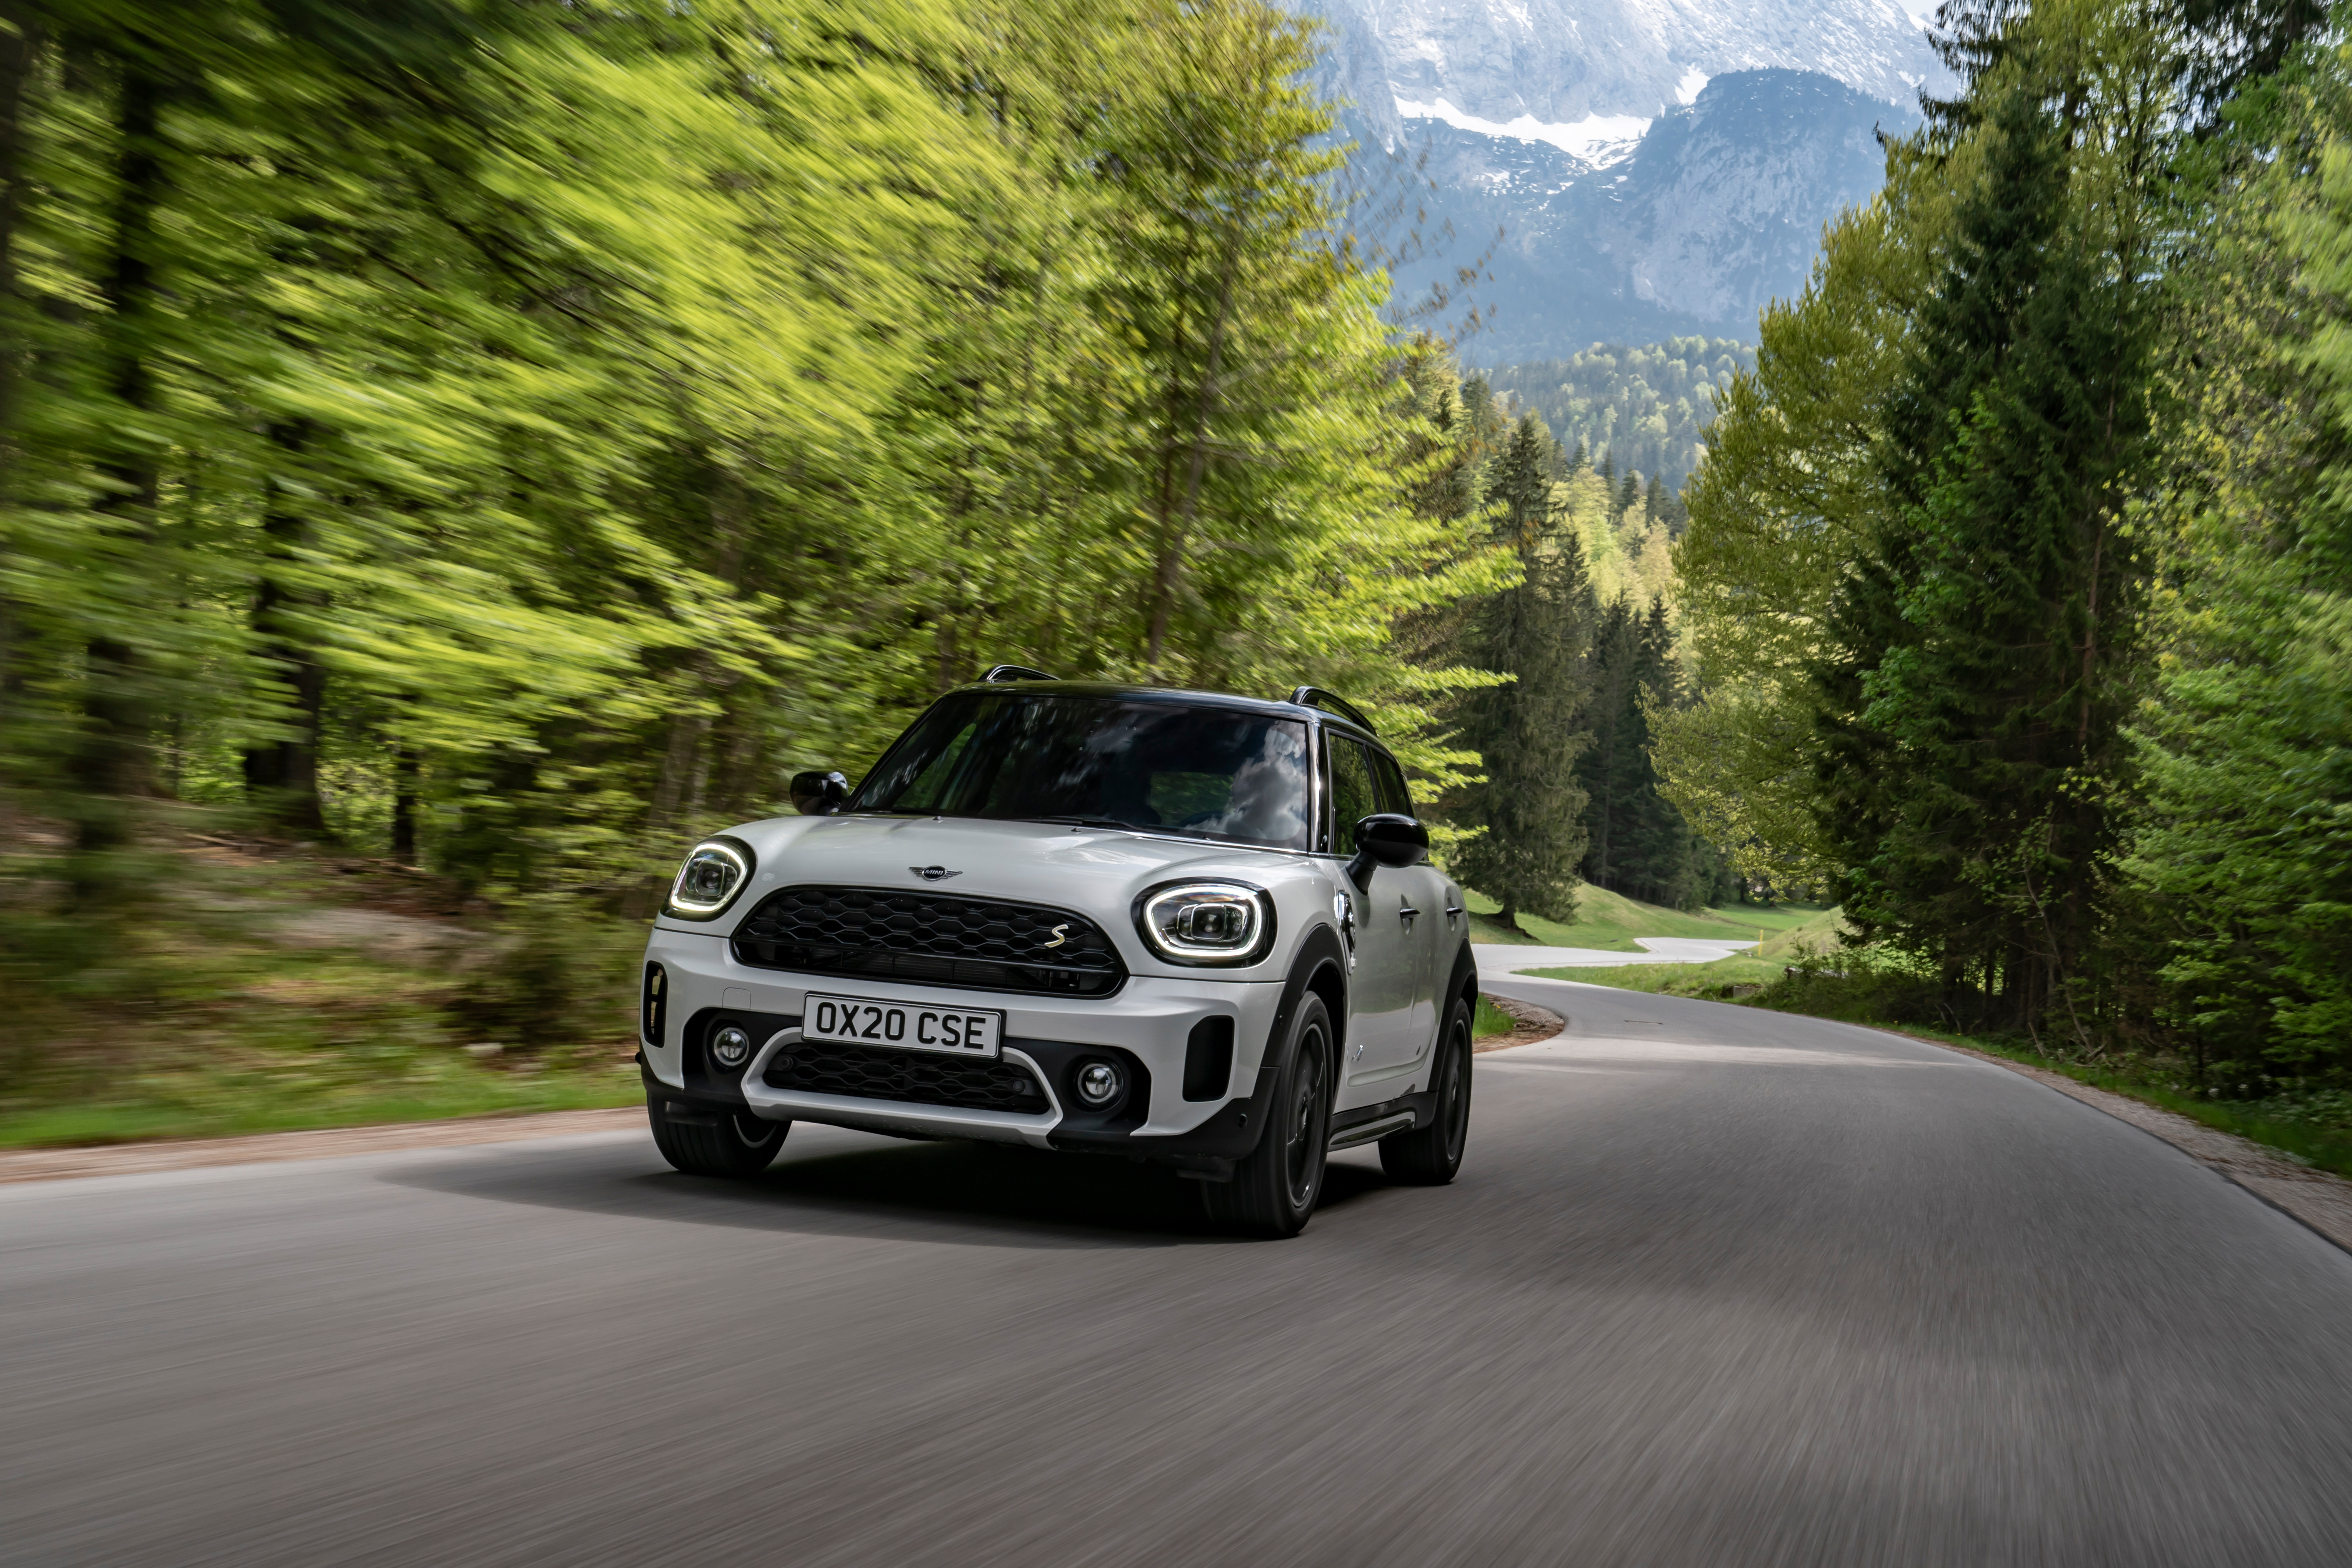 The second-generation Countryman which surfaced in 2017 has just been given a facelift